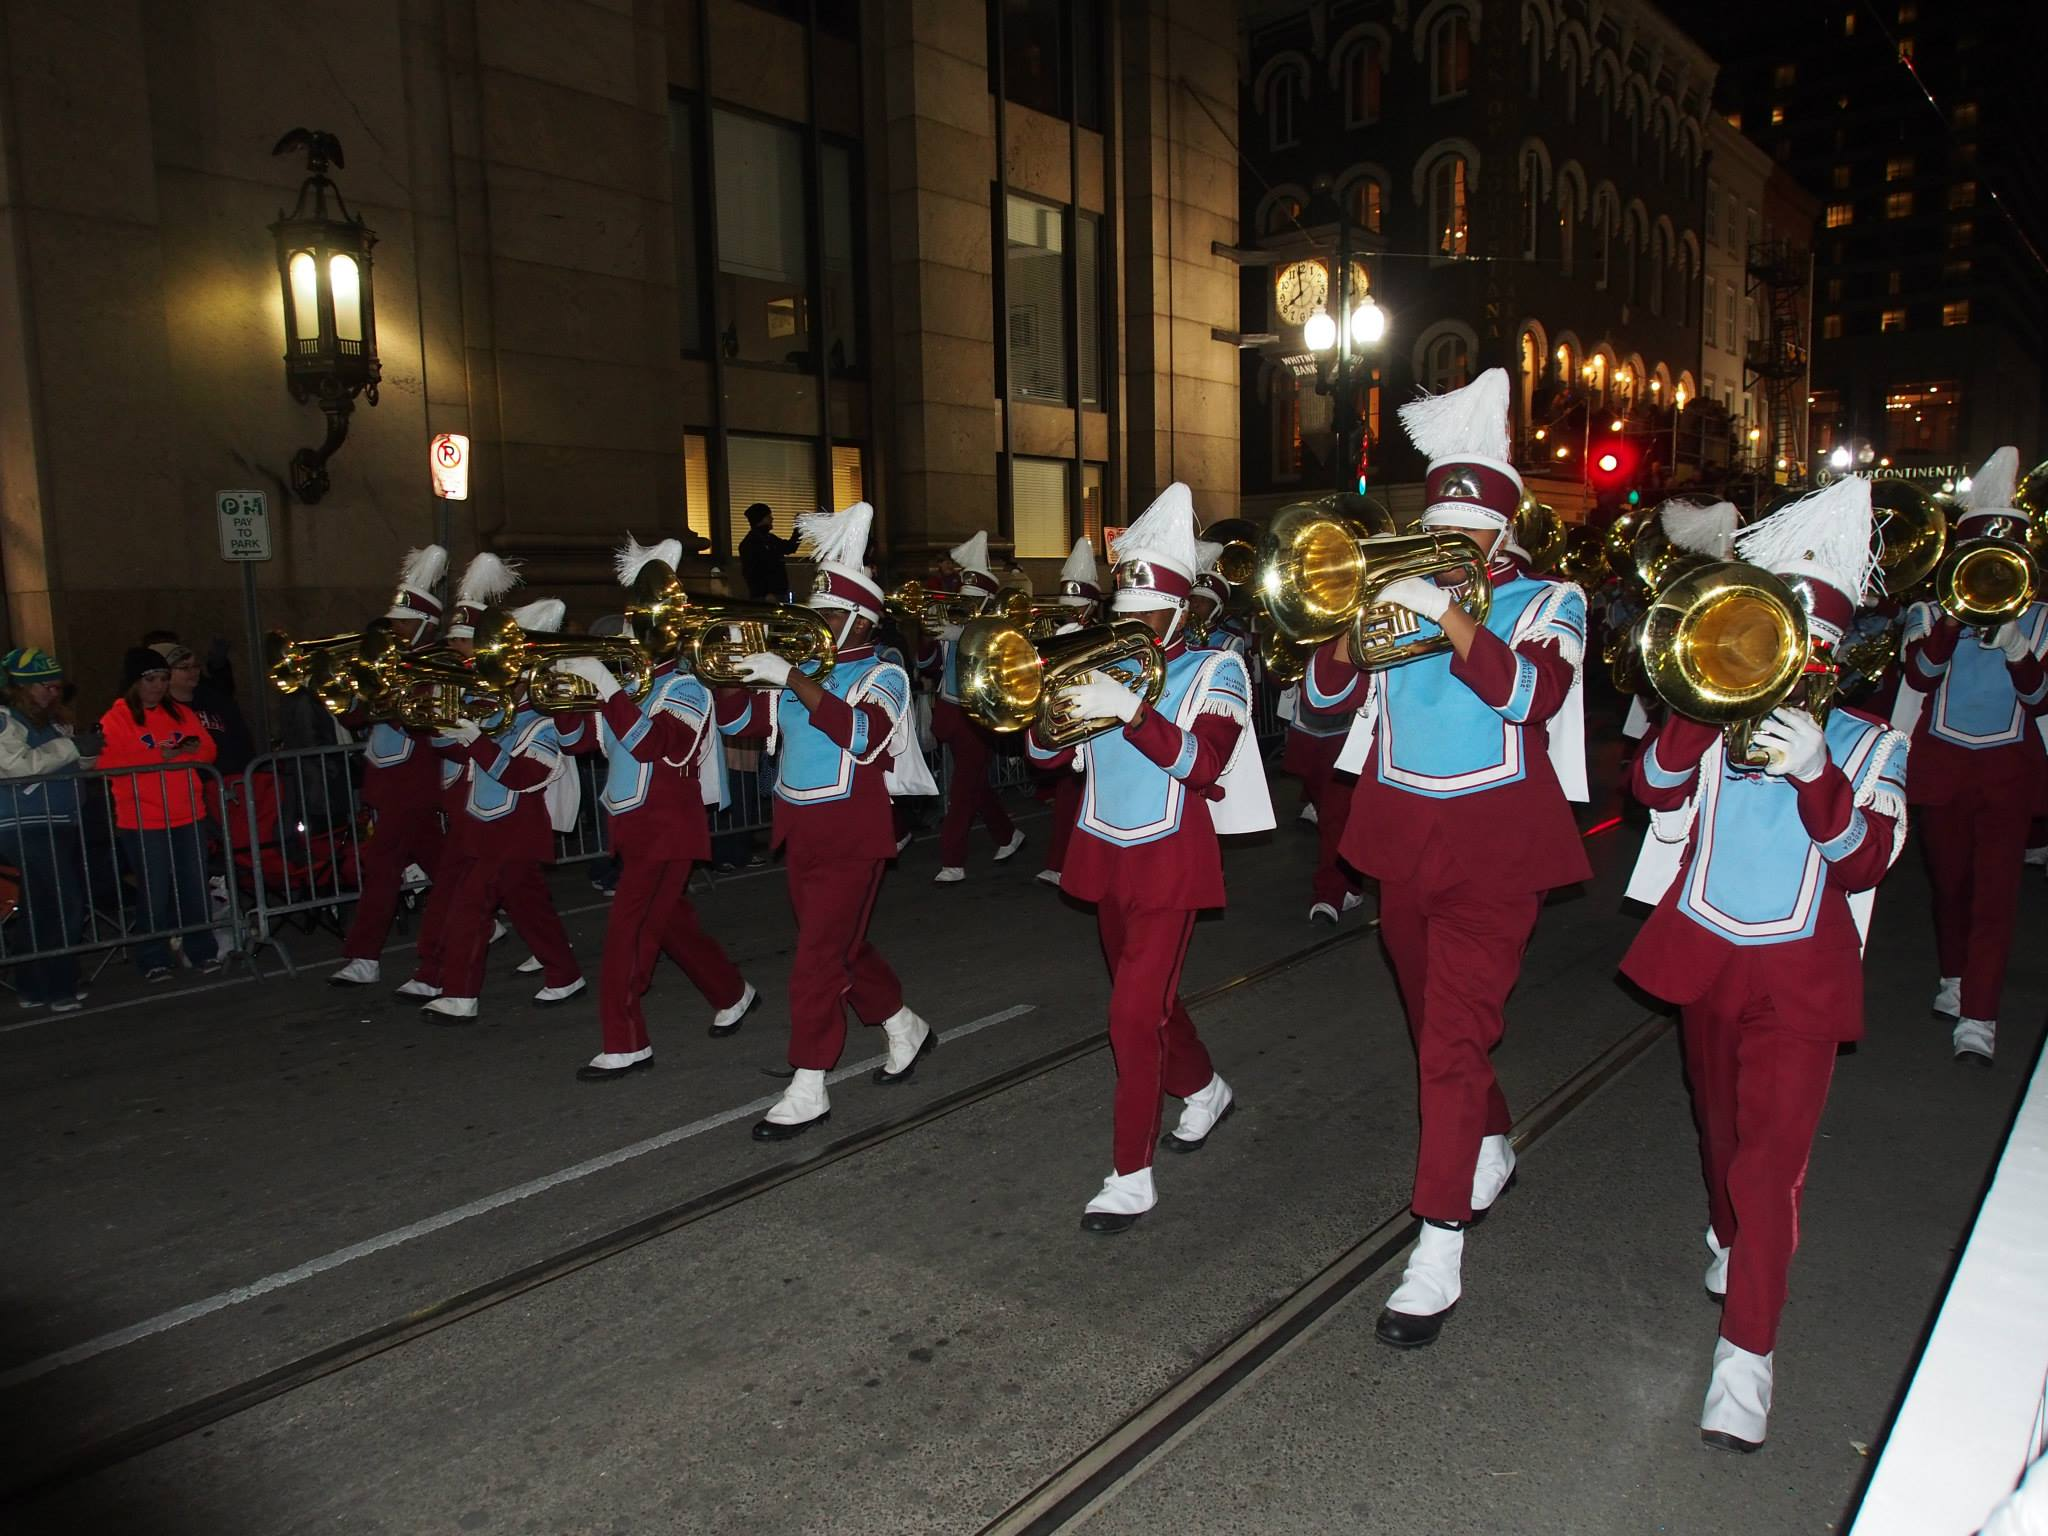 mardi-gras-parade-new-orleans-3